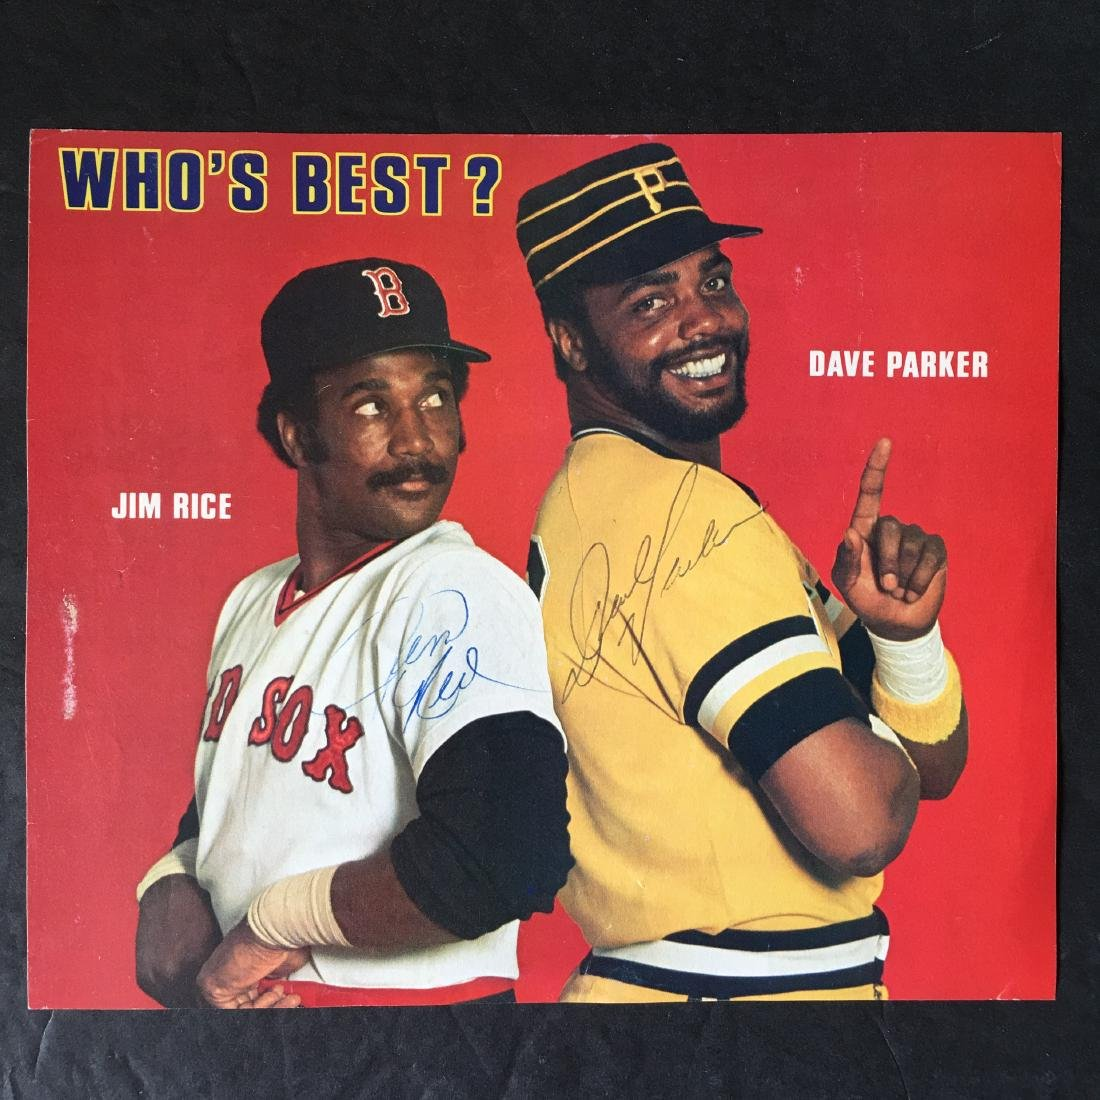 JIM RICE/DAVE PARKER HAND SIGNED PHOTO W/COA